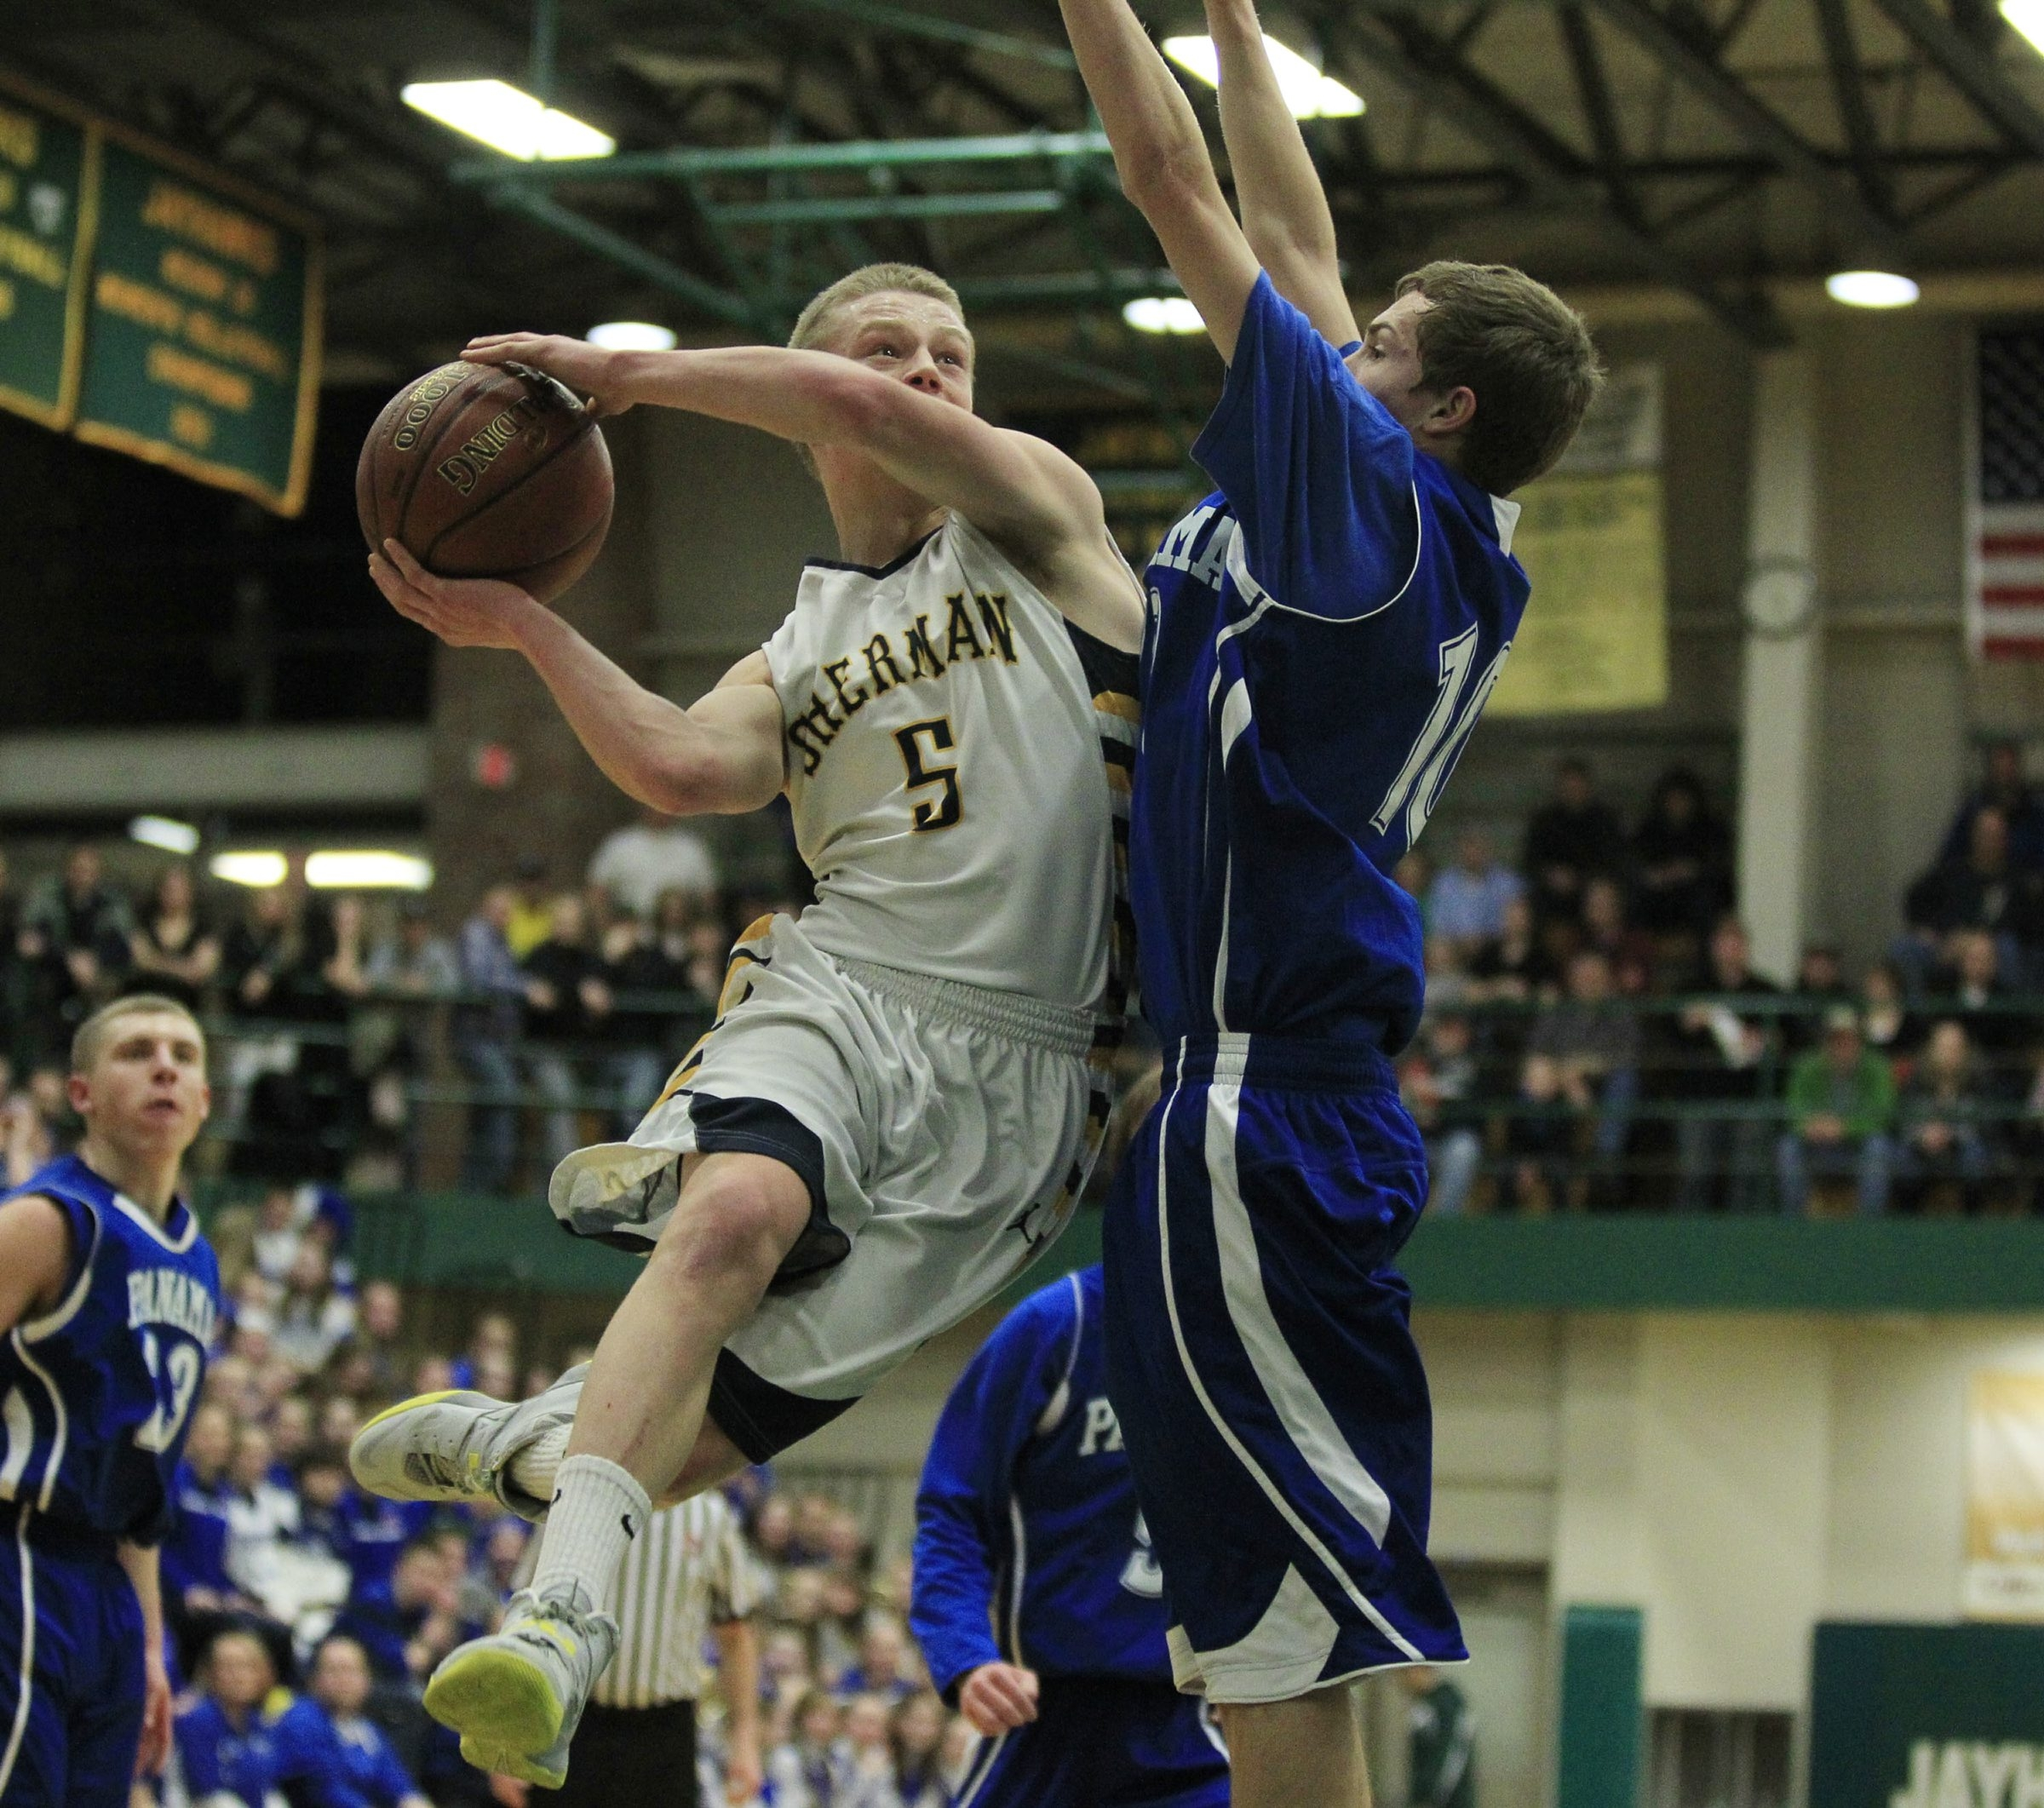 Sherman's Devin Moorhead (5) drives to the basket on Panama's Greg Delahoy (10) in the Class D final Friday.